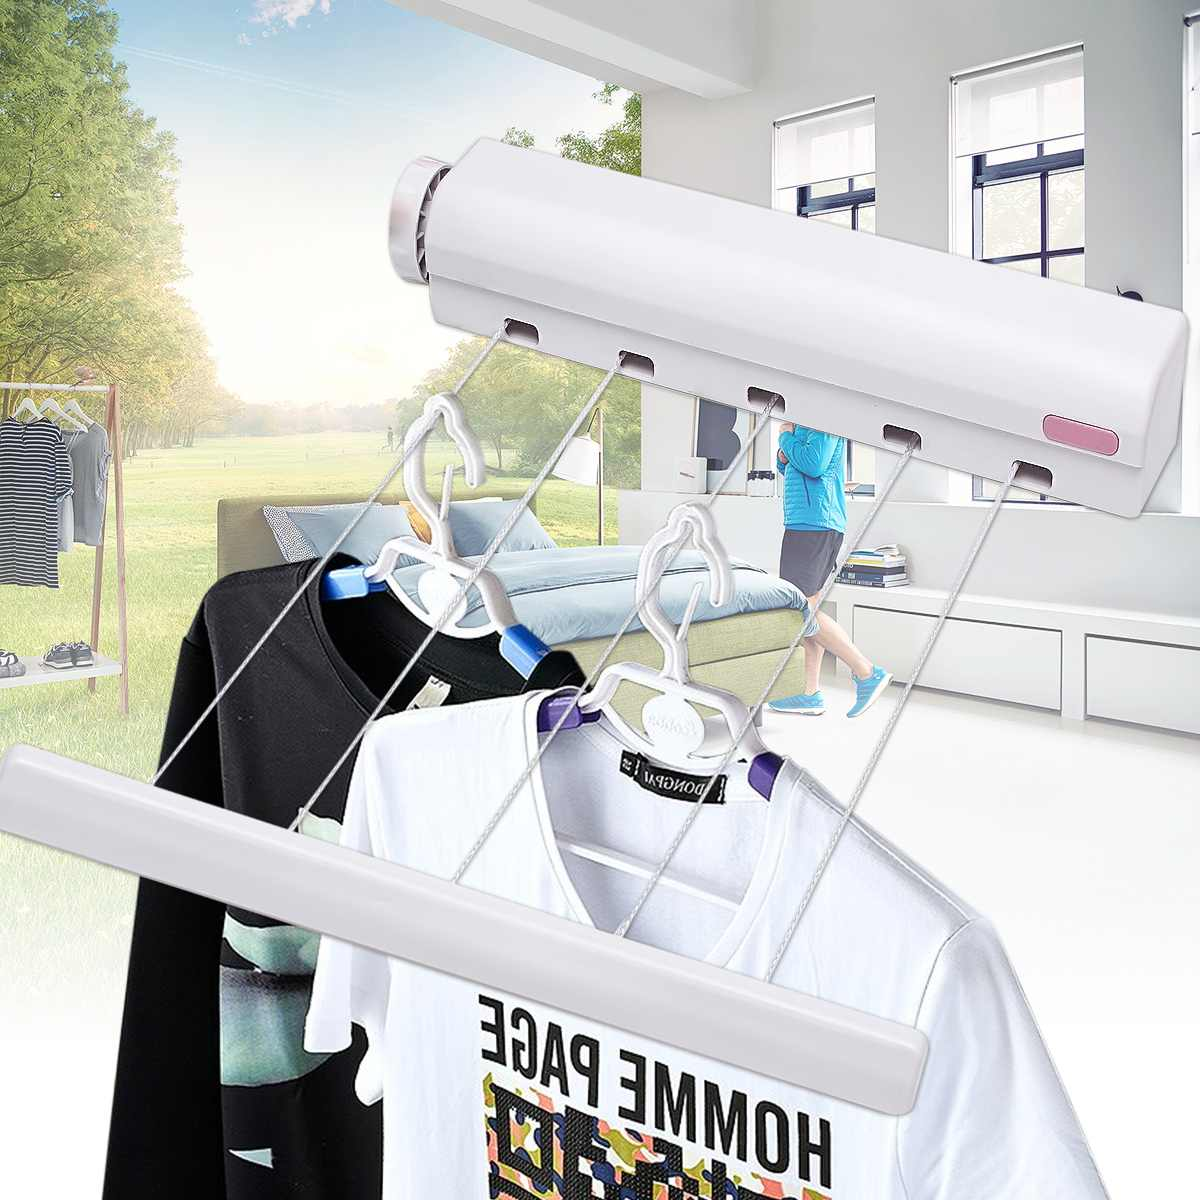 5 Line Retractable Clothes Airer Washing Line Laundry Wall Mount Dryer Hanger Clothesline Outdoor Washing Line Drying Rack 3.7M